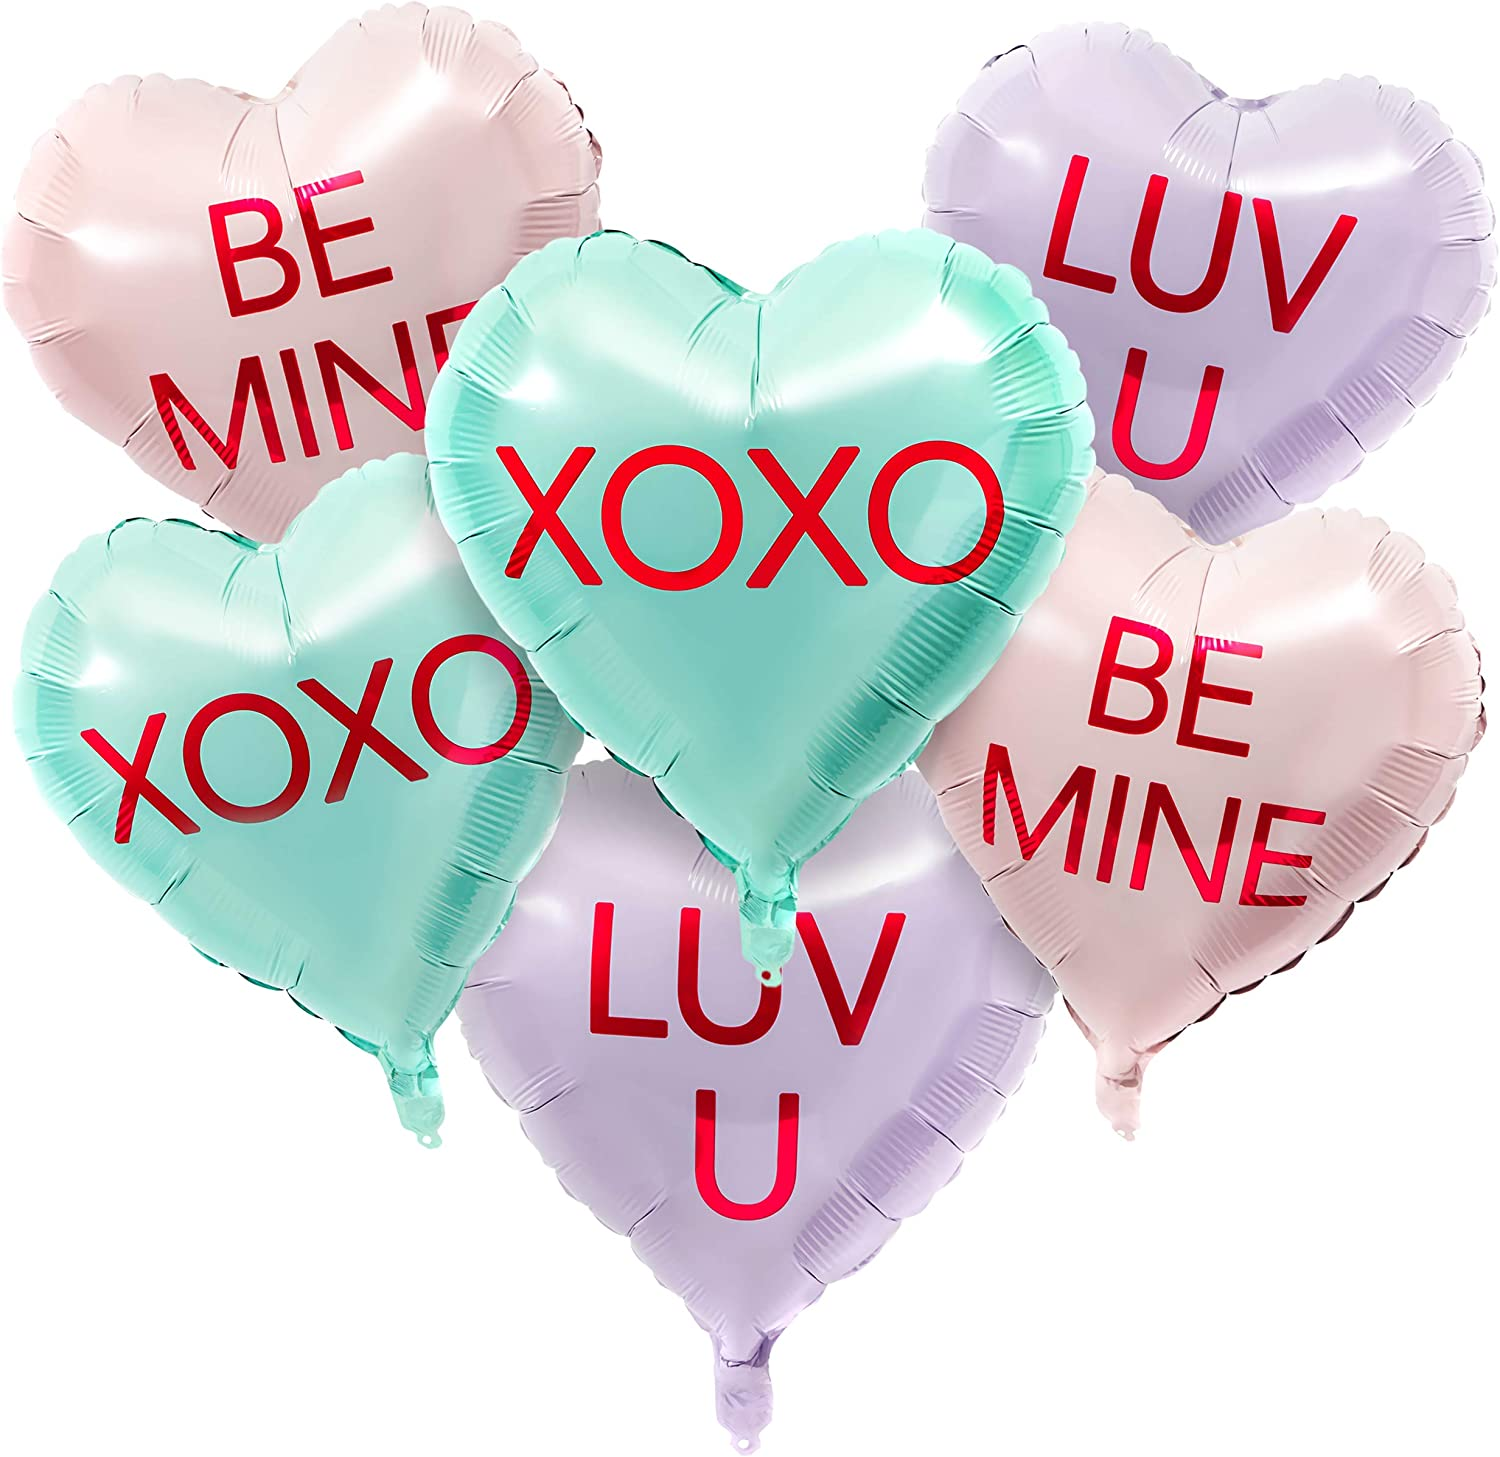 Conversation Candy Heart Balloons for Valentine's Day (12 Pack)